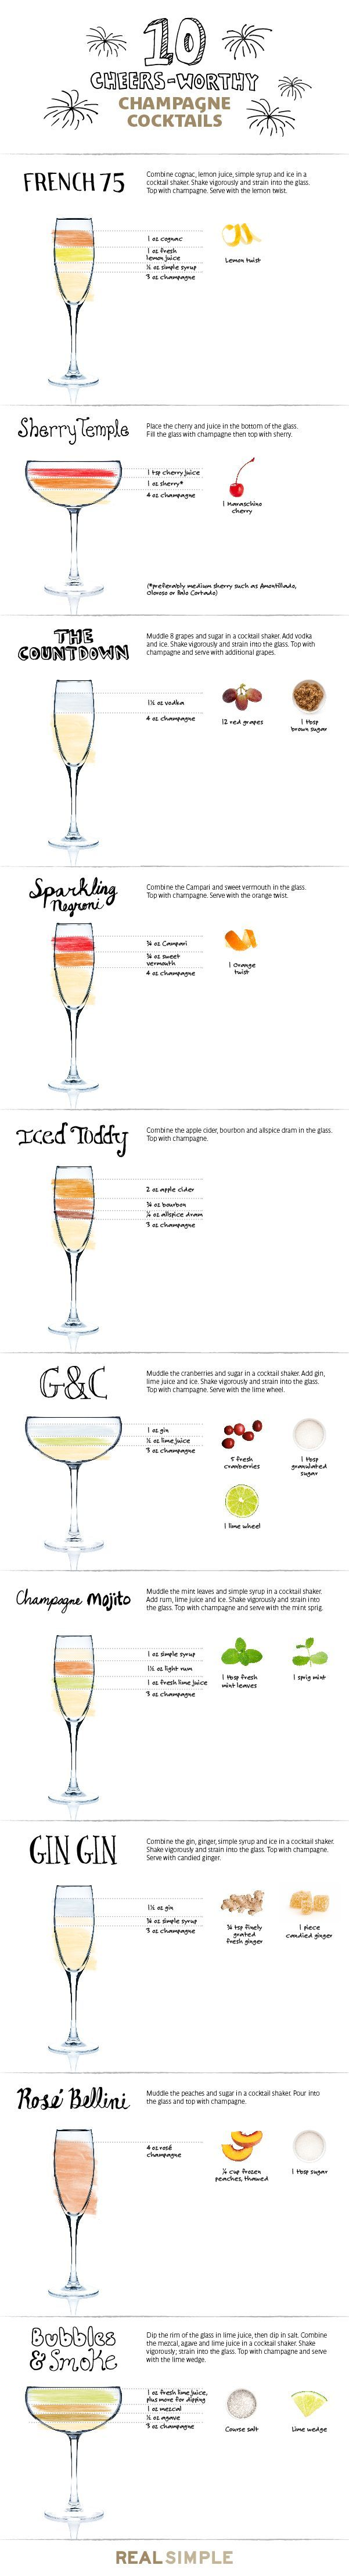 Champagne is great on its own, but adding a little cherry juice and sherry, or maybe vodka, grapes and brown sugar, can take it to a whole new level.